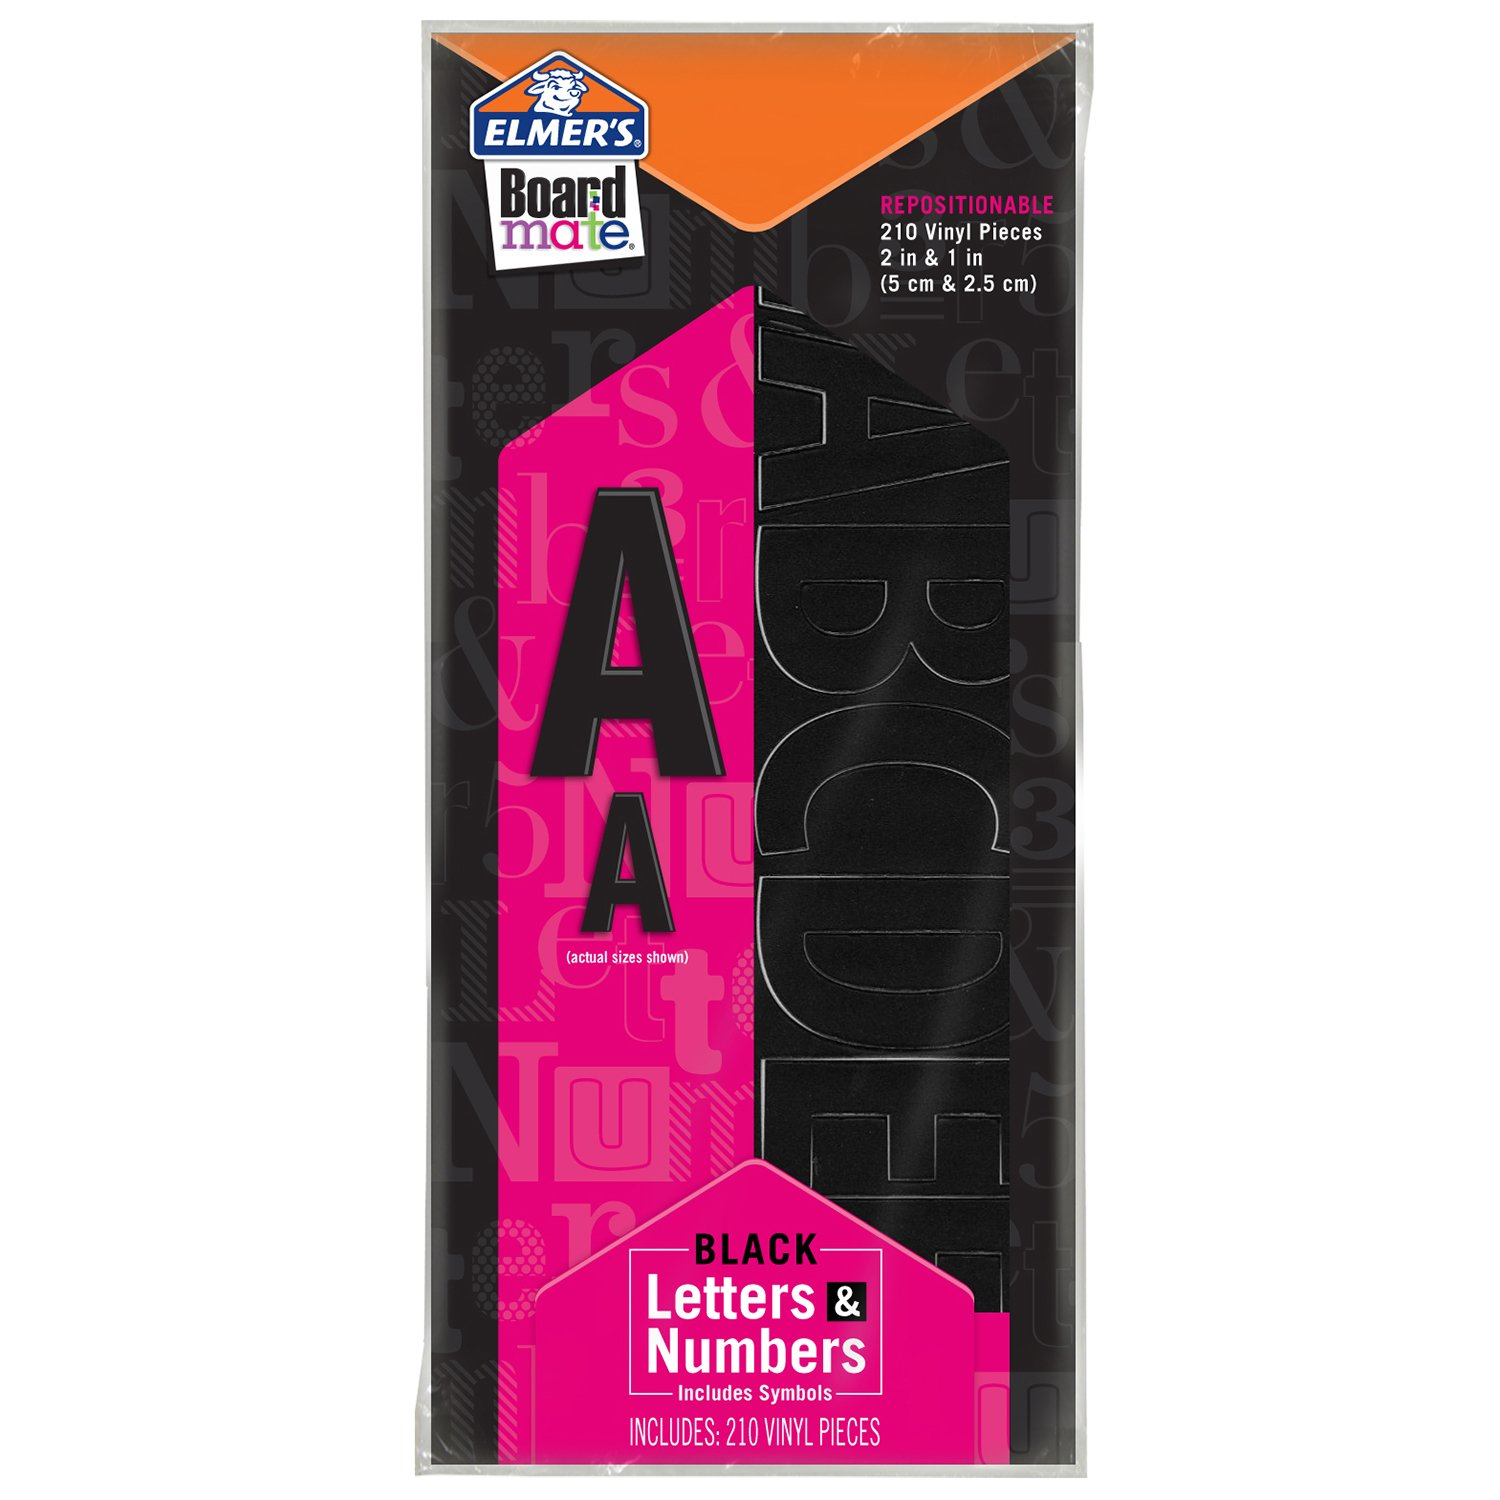 Amazon.com : ELMERS Board Mate Repositionable Vinyl Sticky Letters ...